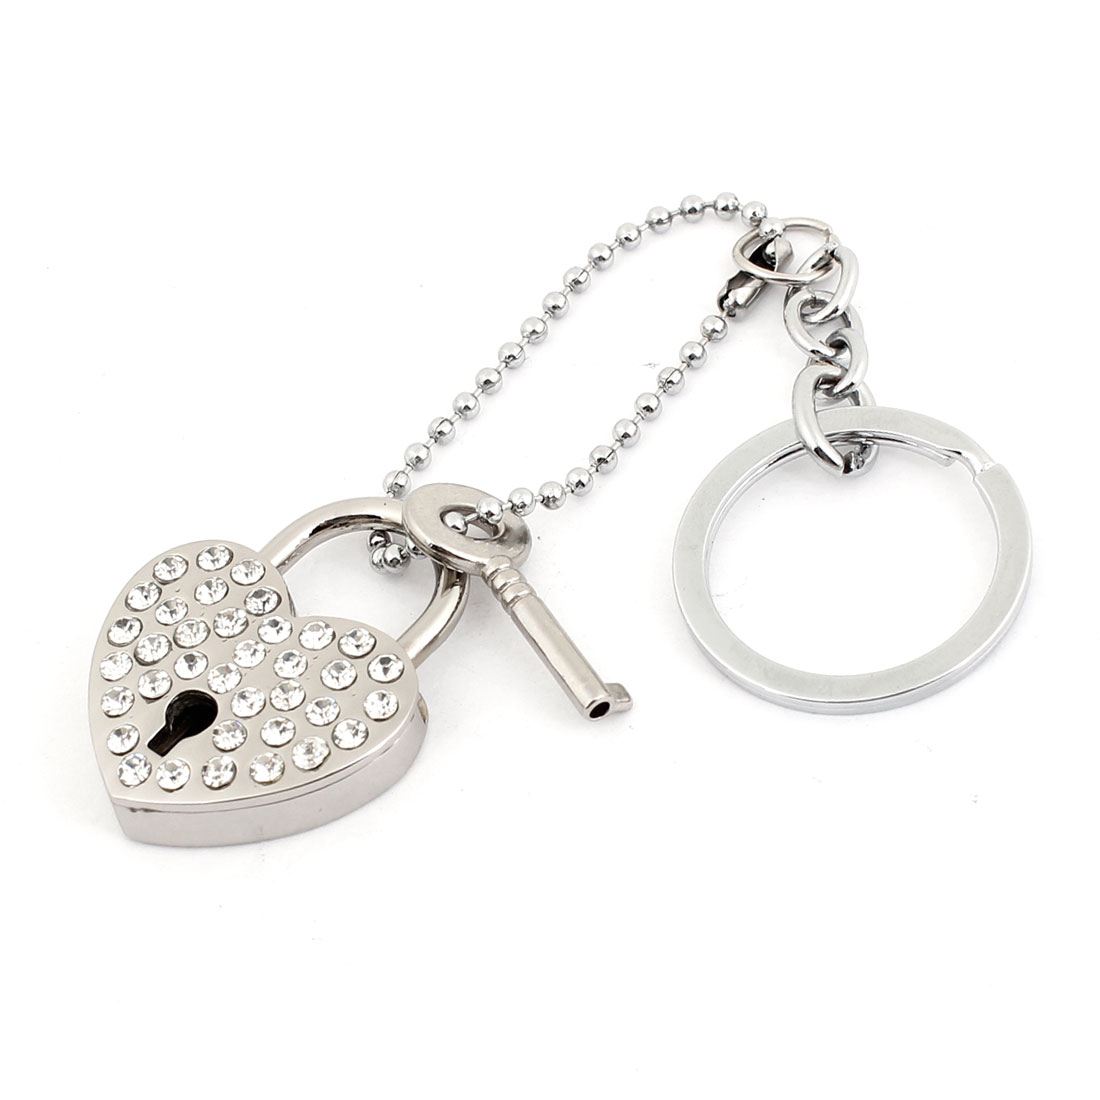 Lovers Heart Rhinestone Inlaid Lock Pendent Keyring Chain Key Holder